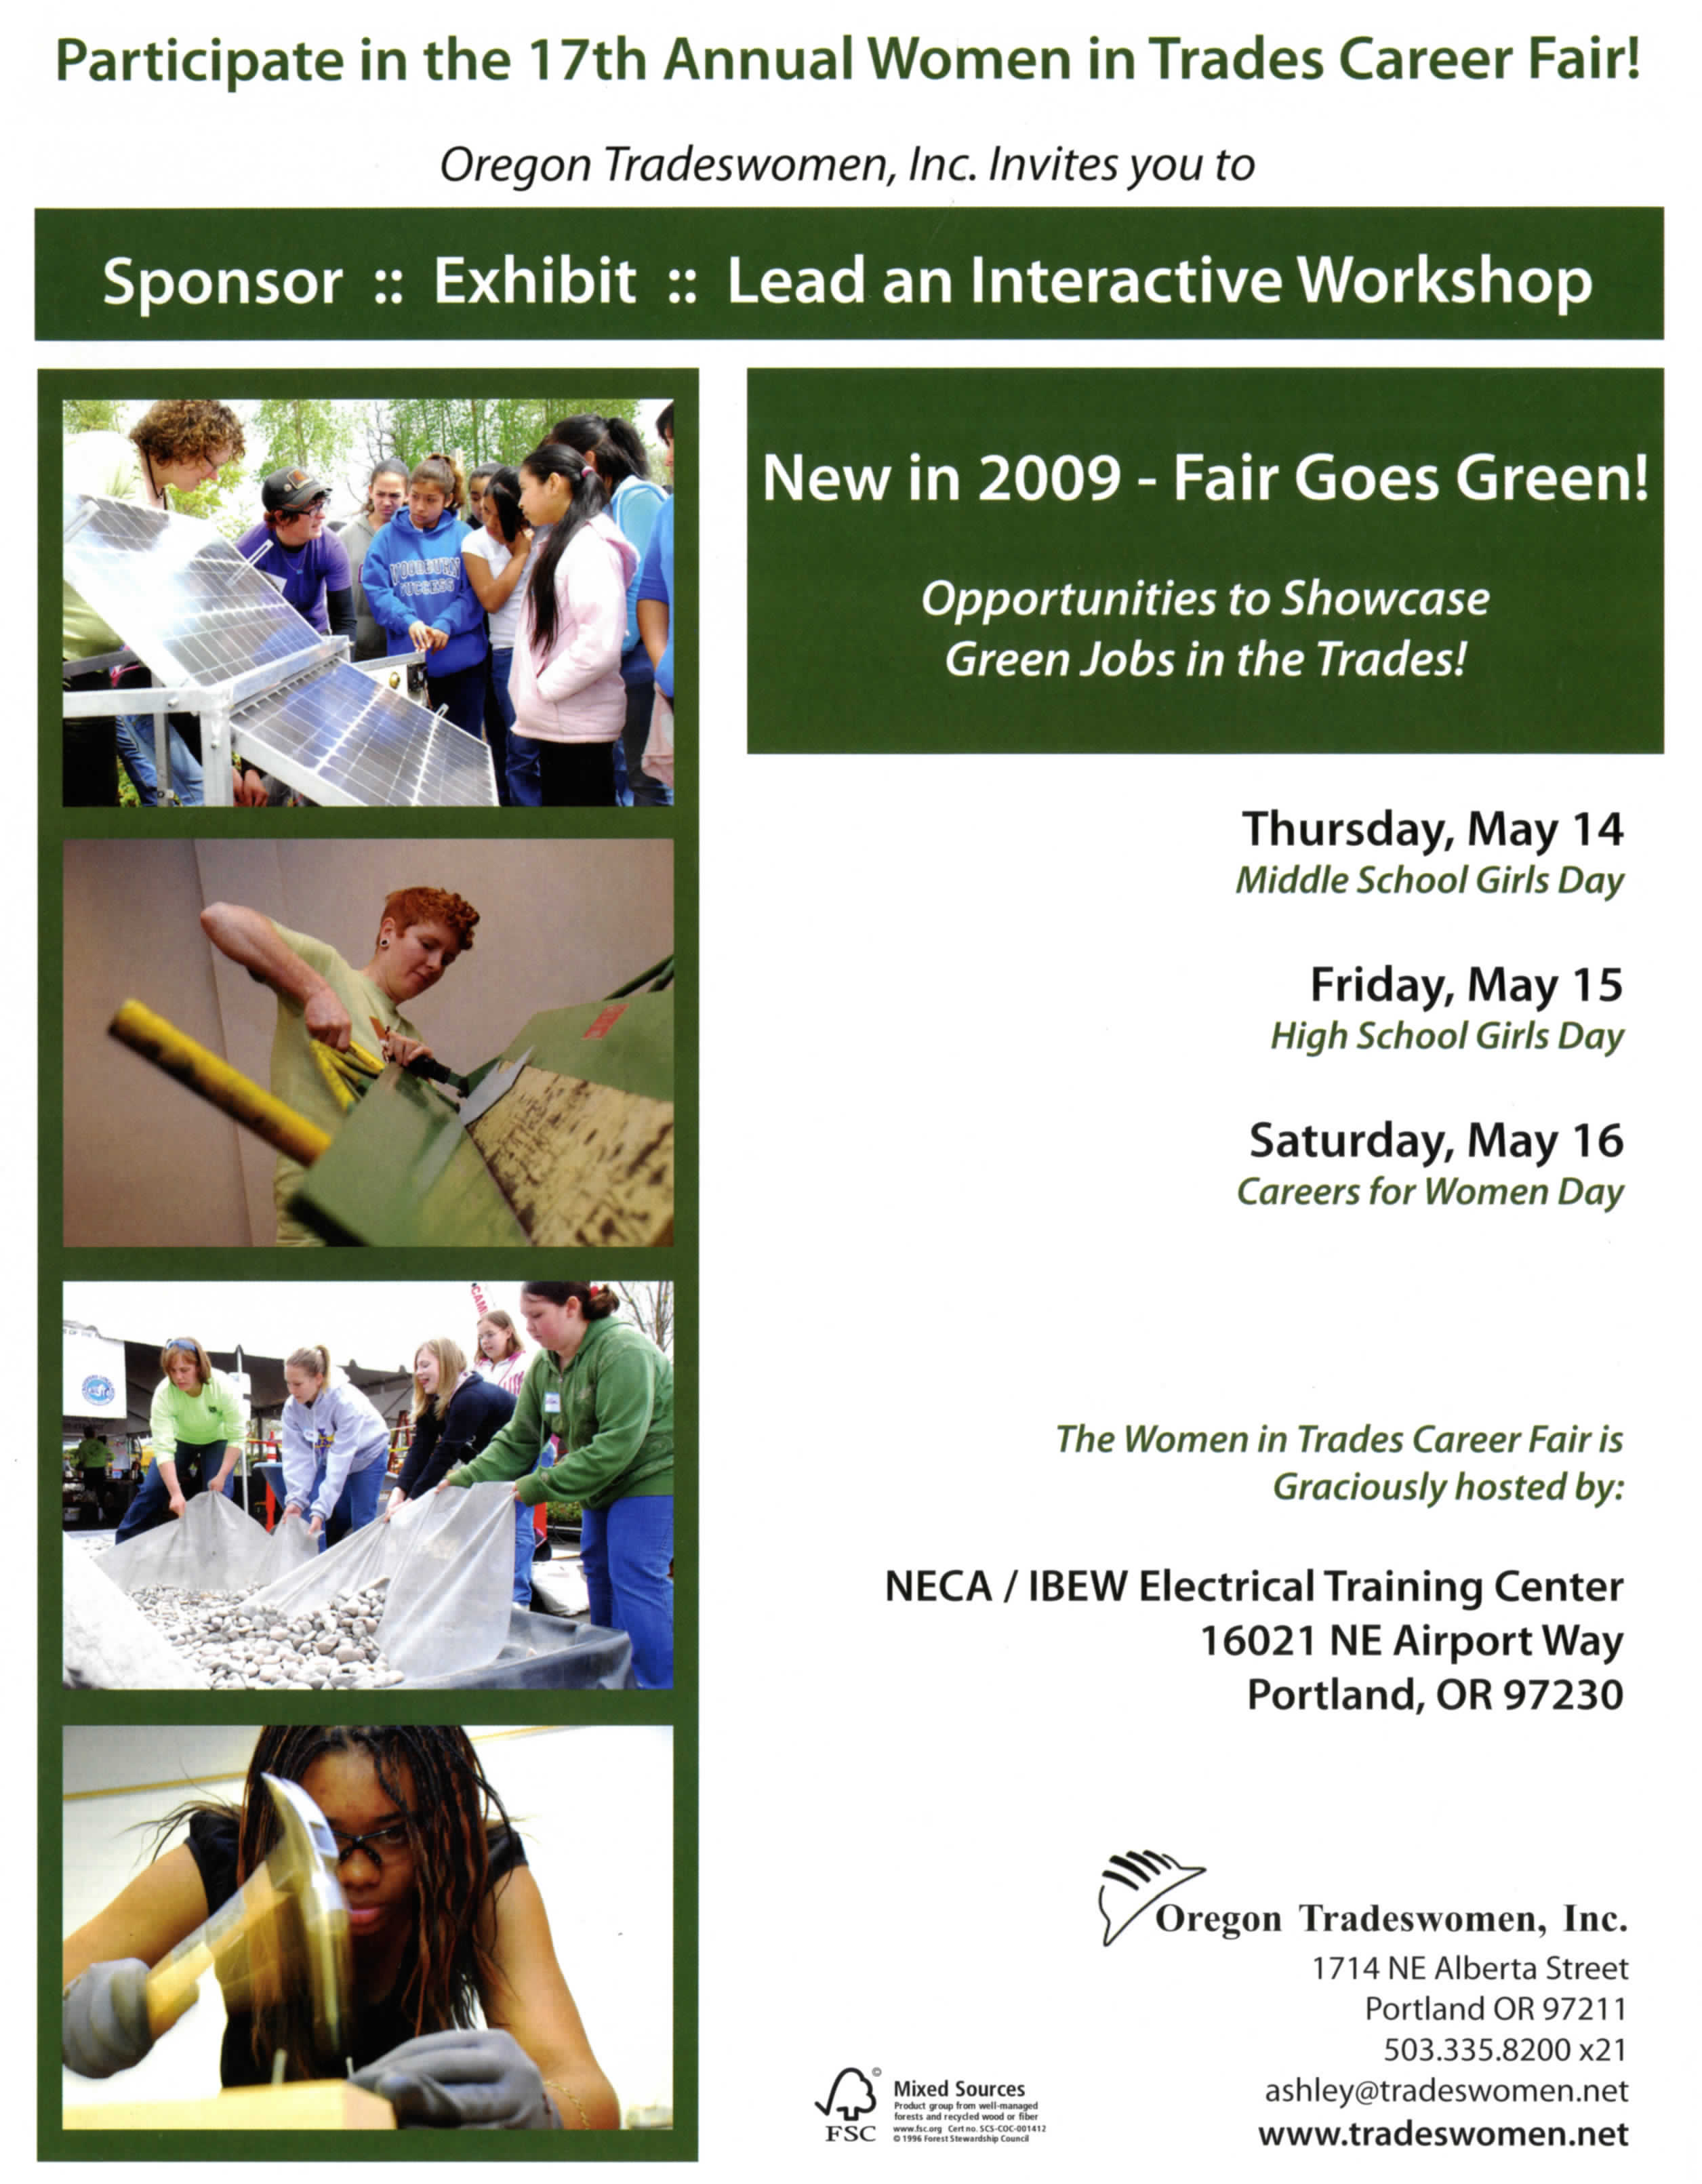 Brochure for the 17th annual Women in Trades Career Fair sponsored by Oregon Tradeswomen, Inc.